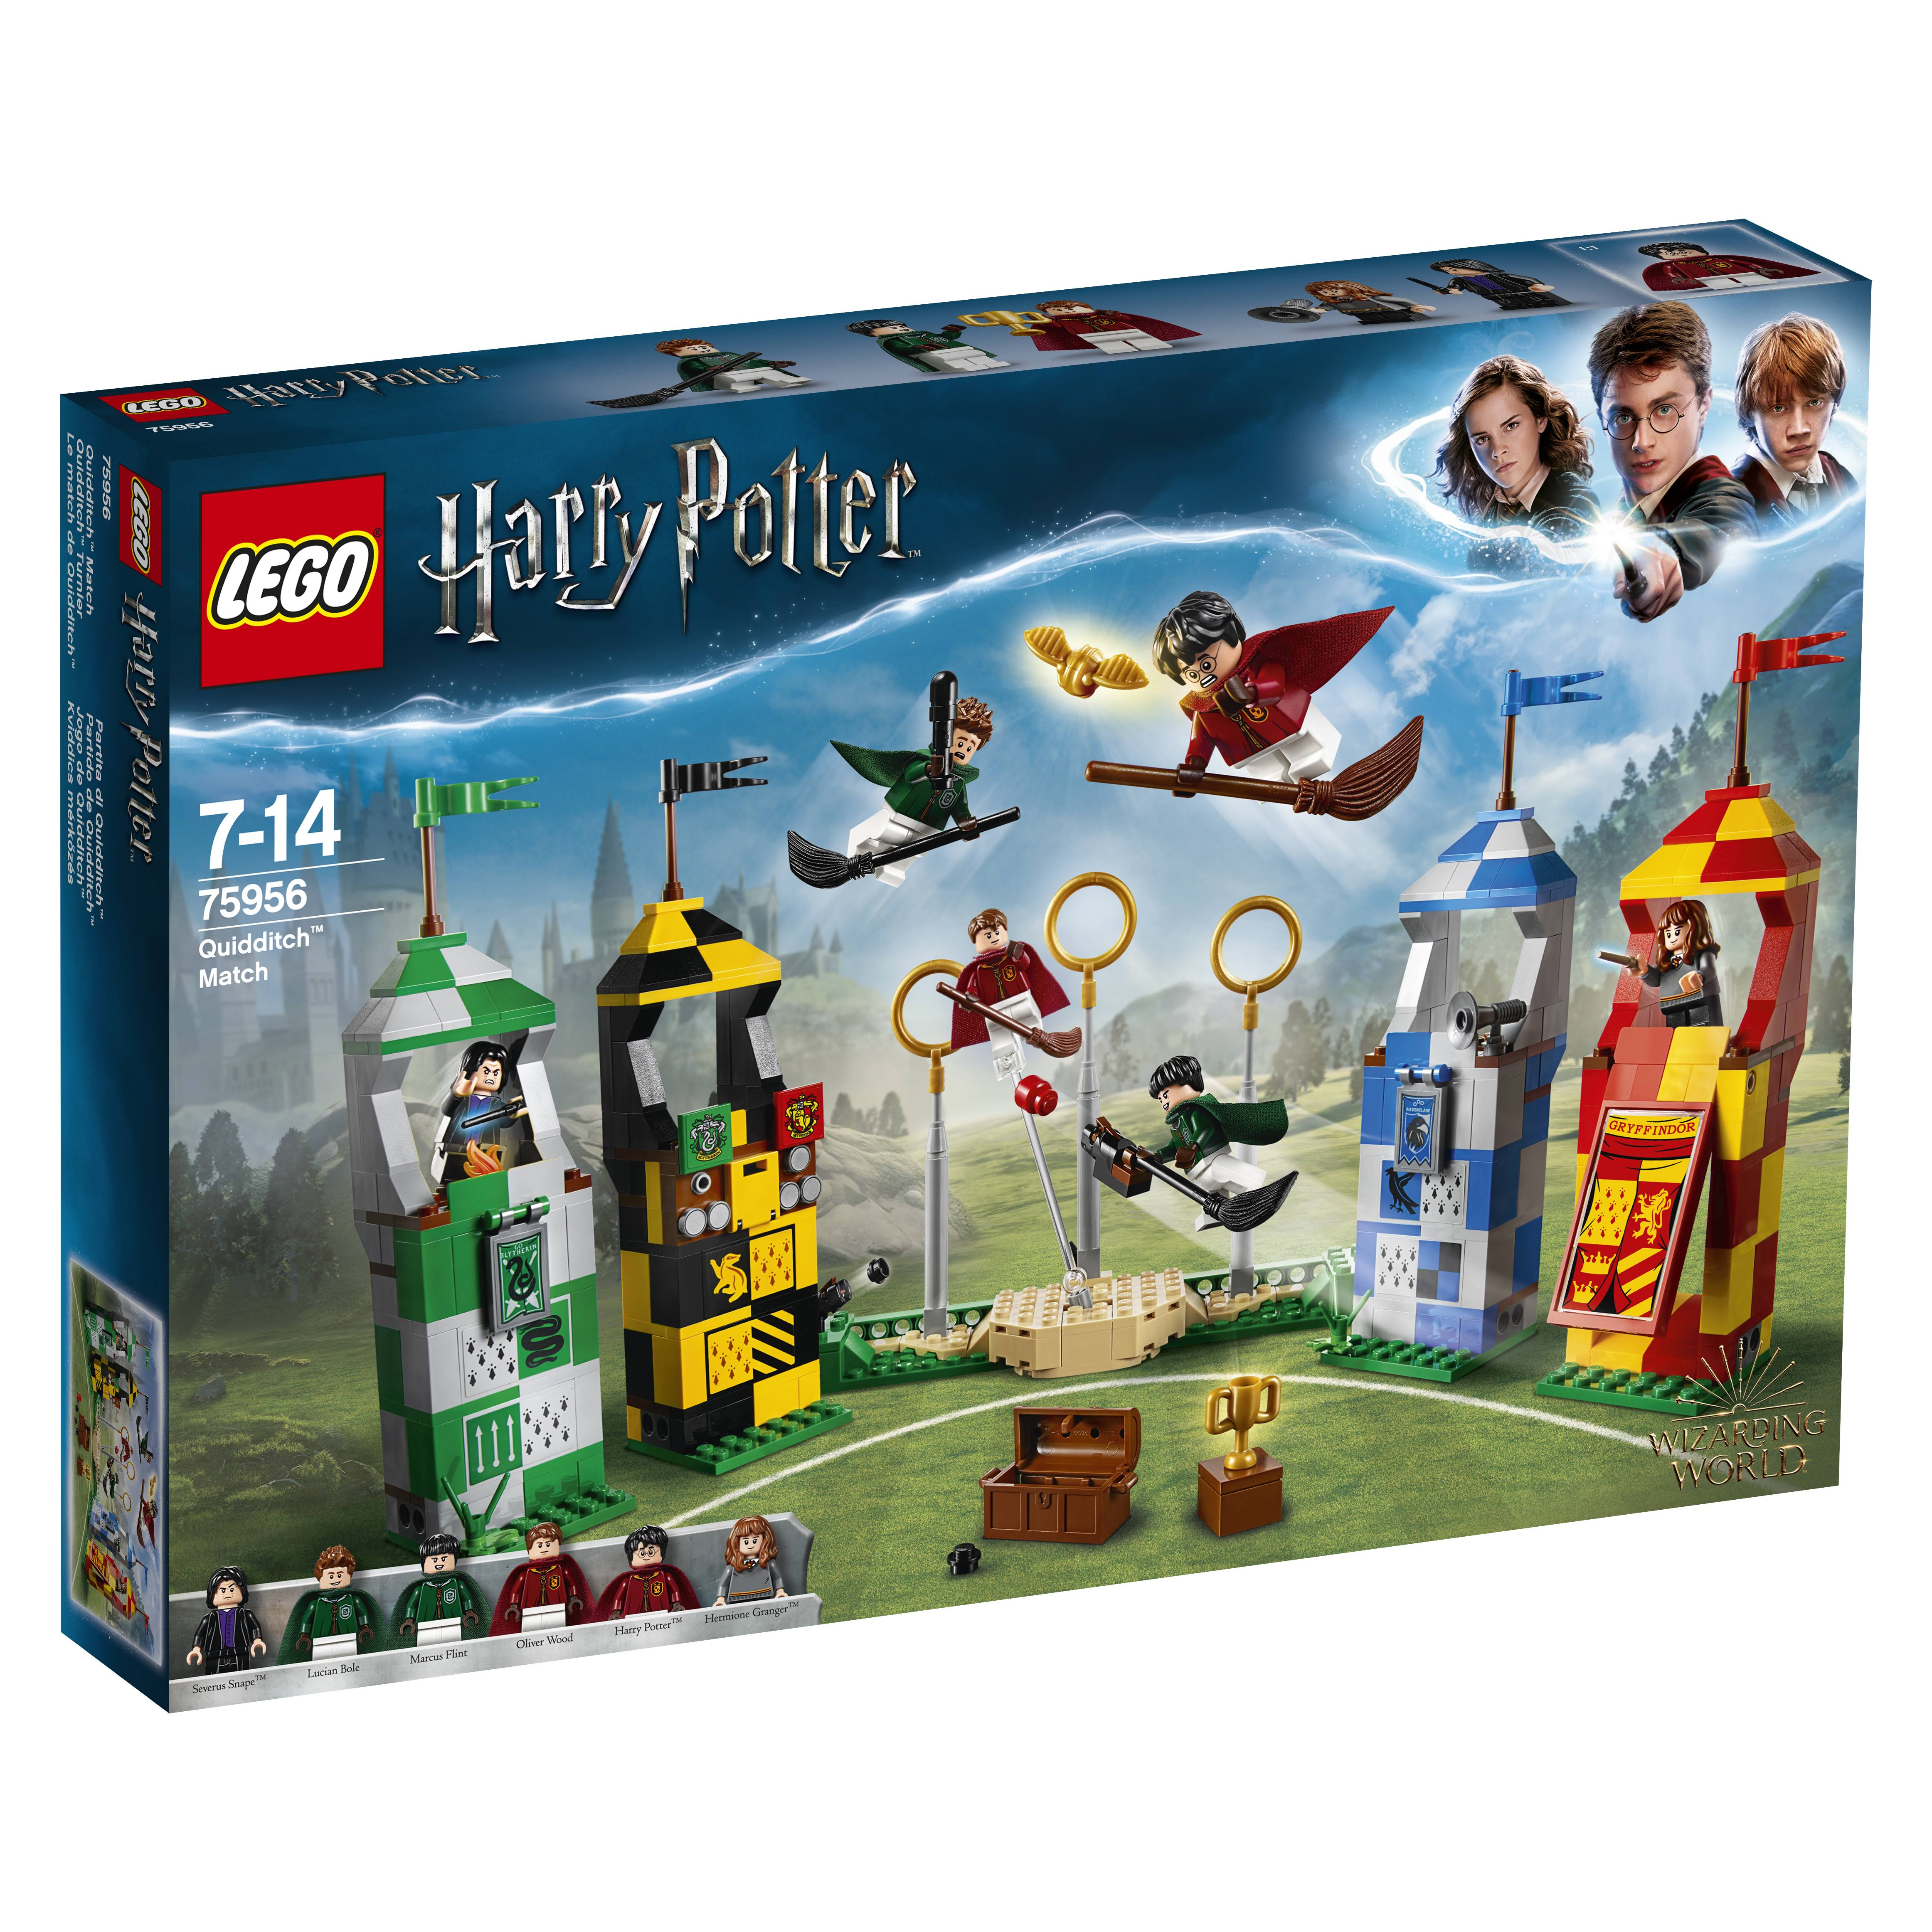 LEGO 75956 Harry Potter Quidditch Match set - 500pcs, 6 minifigures, 7 to 14 Years